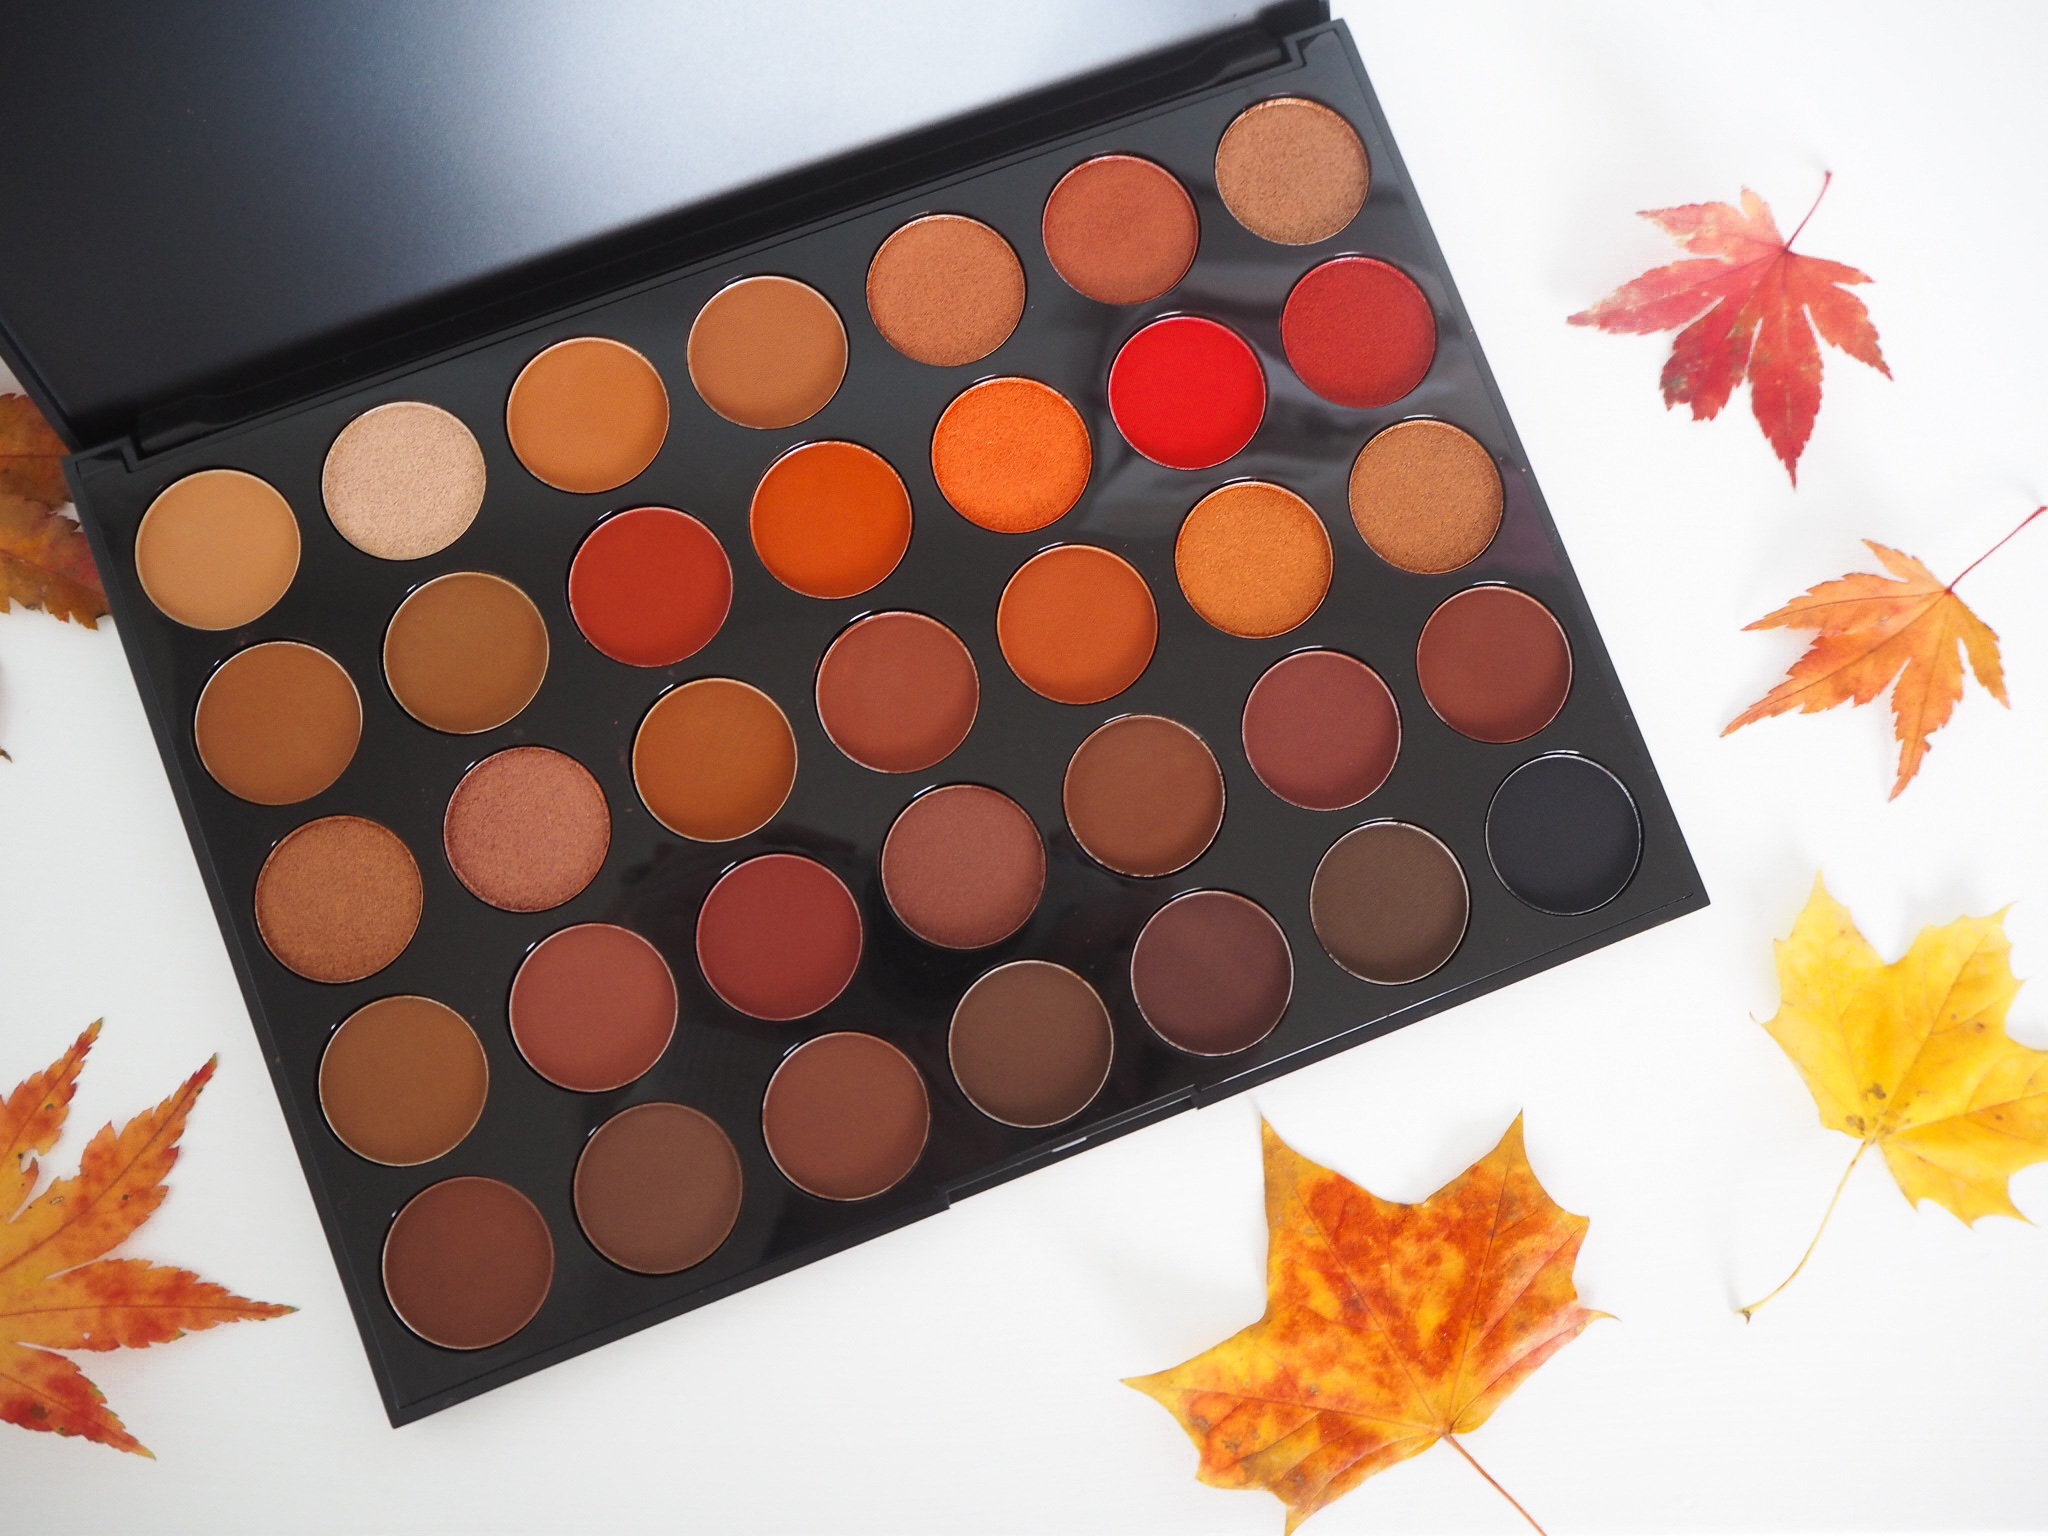 morphe 3205 second nature eyeshadow palette